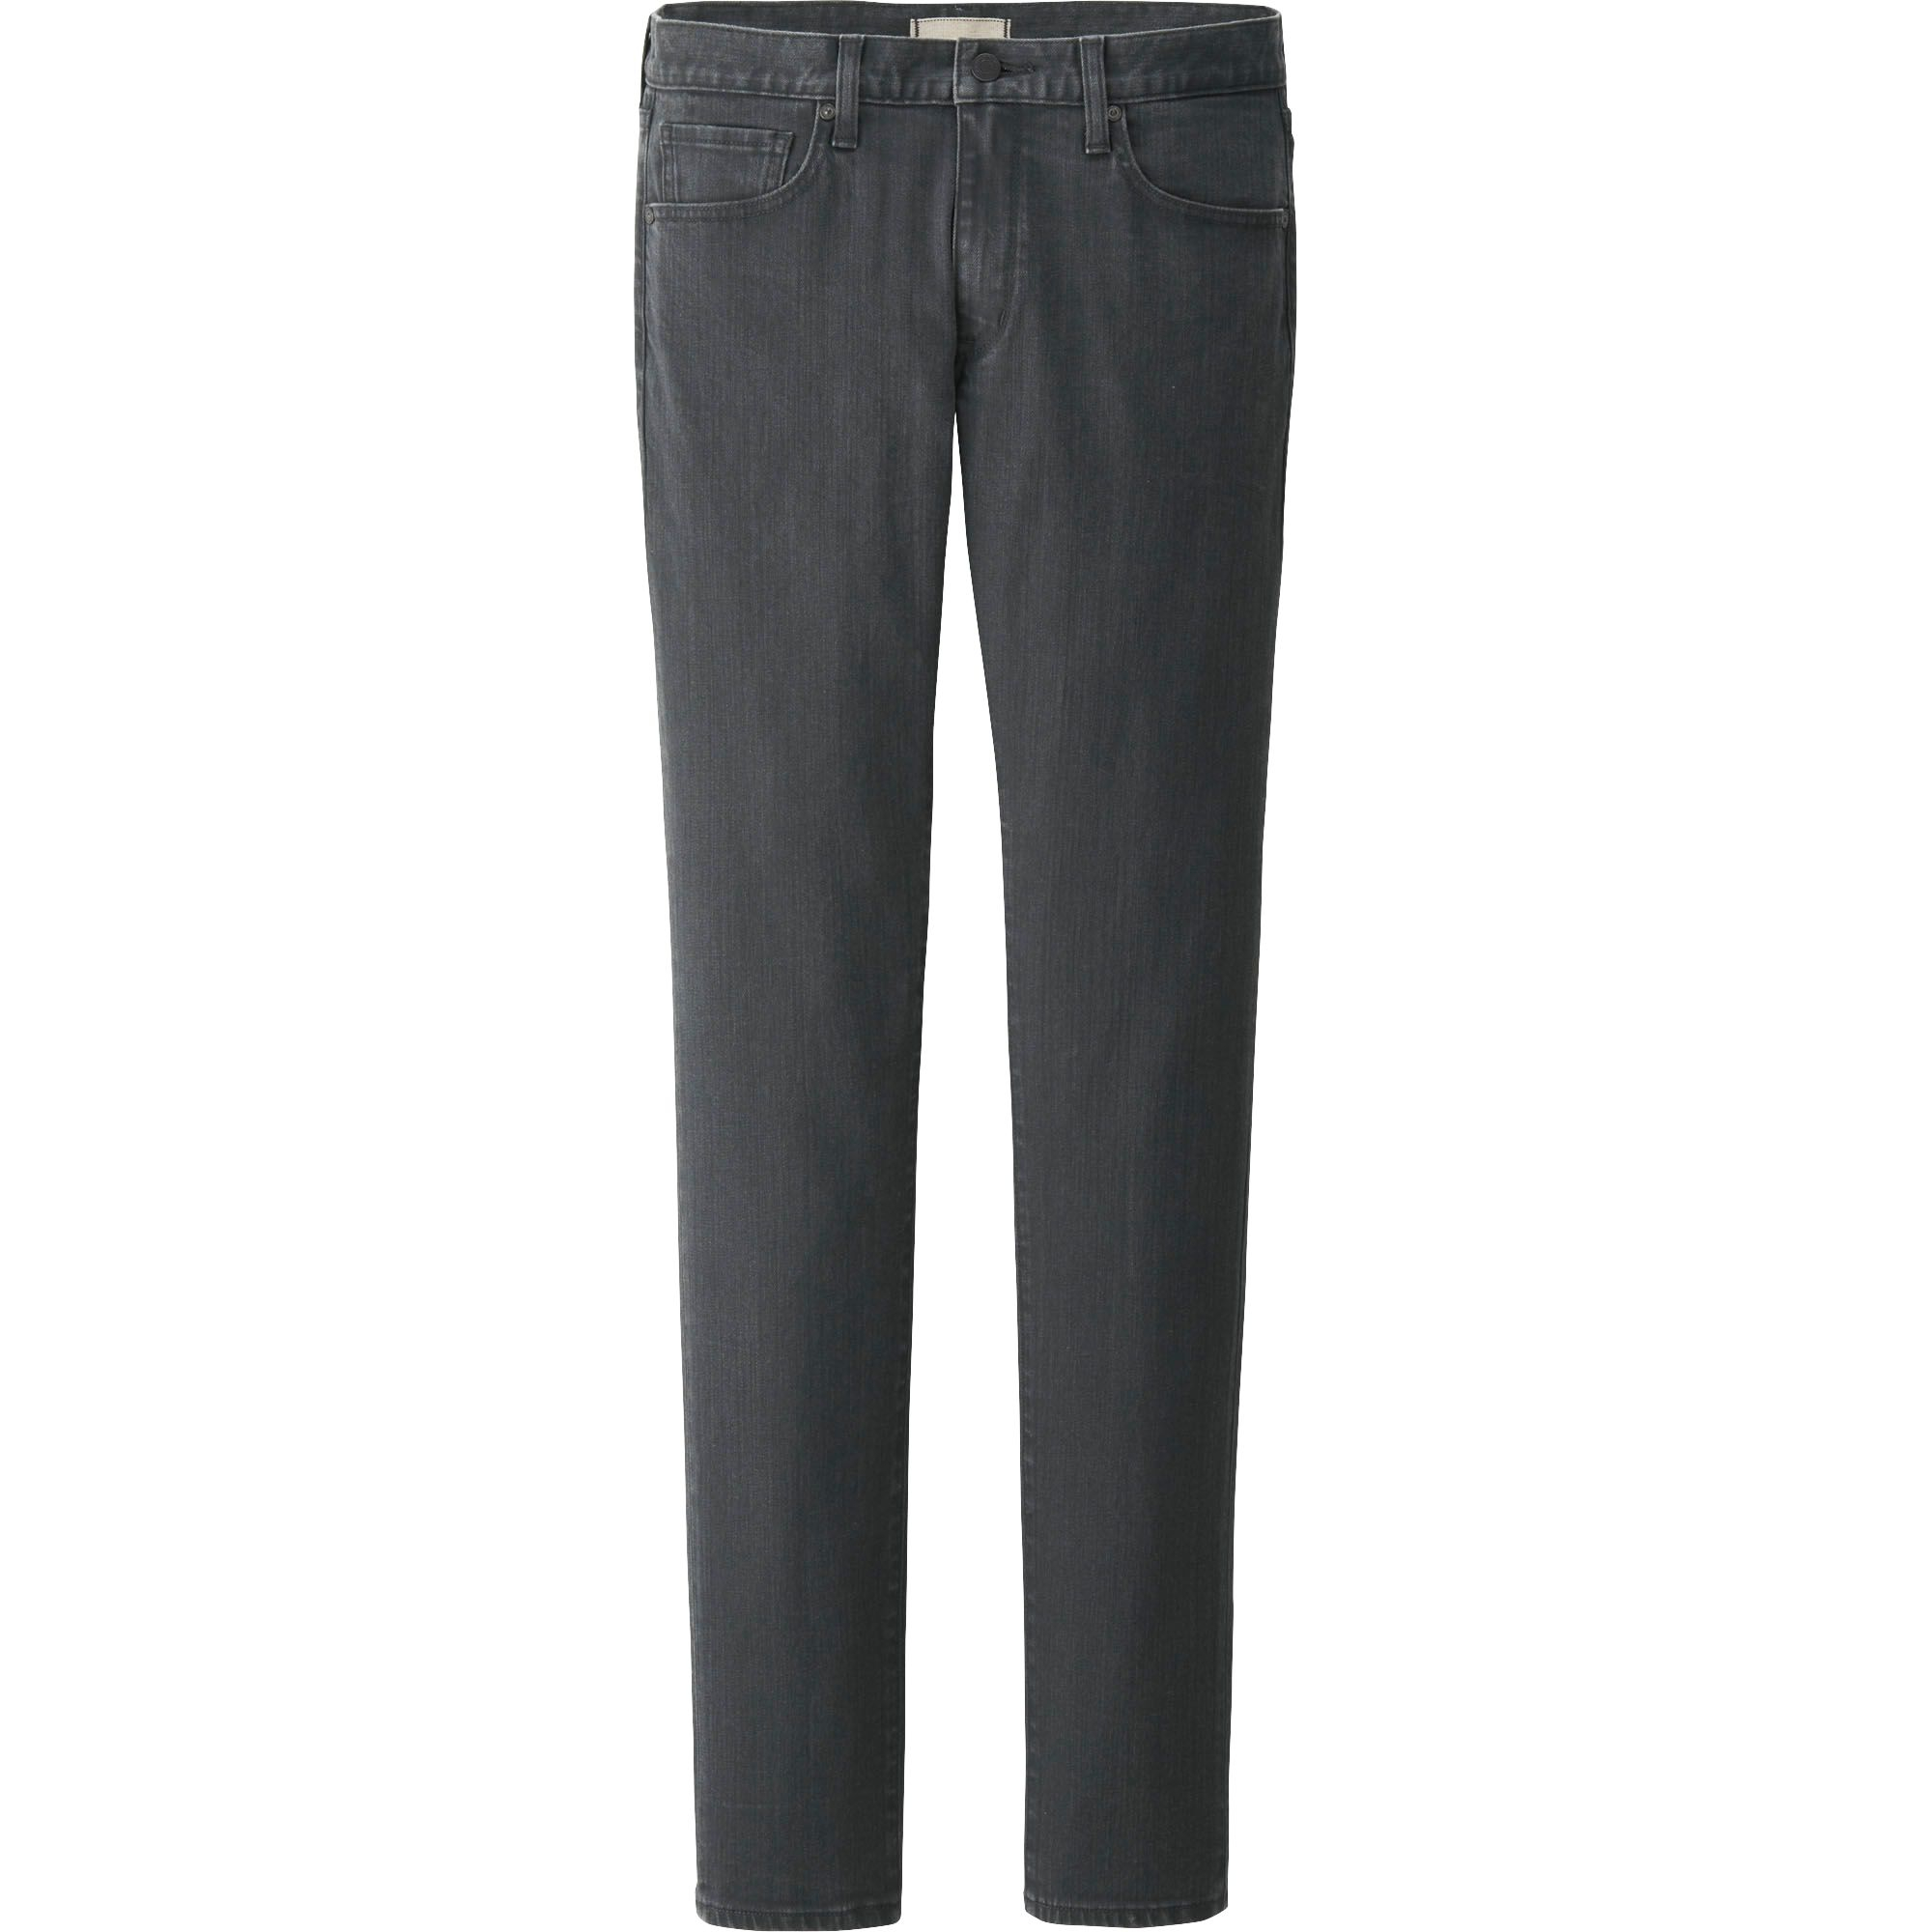 uniqlo men skinny fit tapered jeans in gray for men lyst. Black Bedroom Furniture Sets. Home Design Ideas